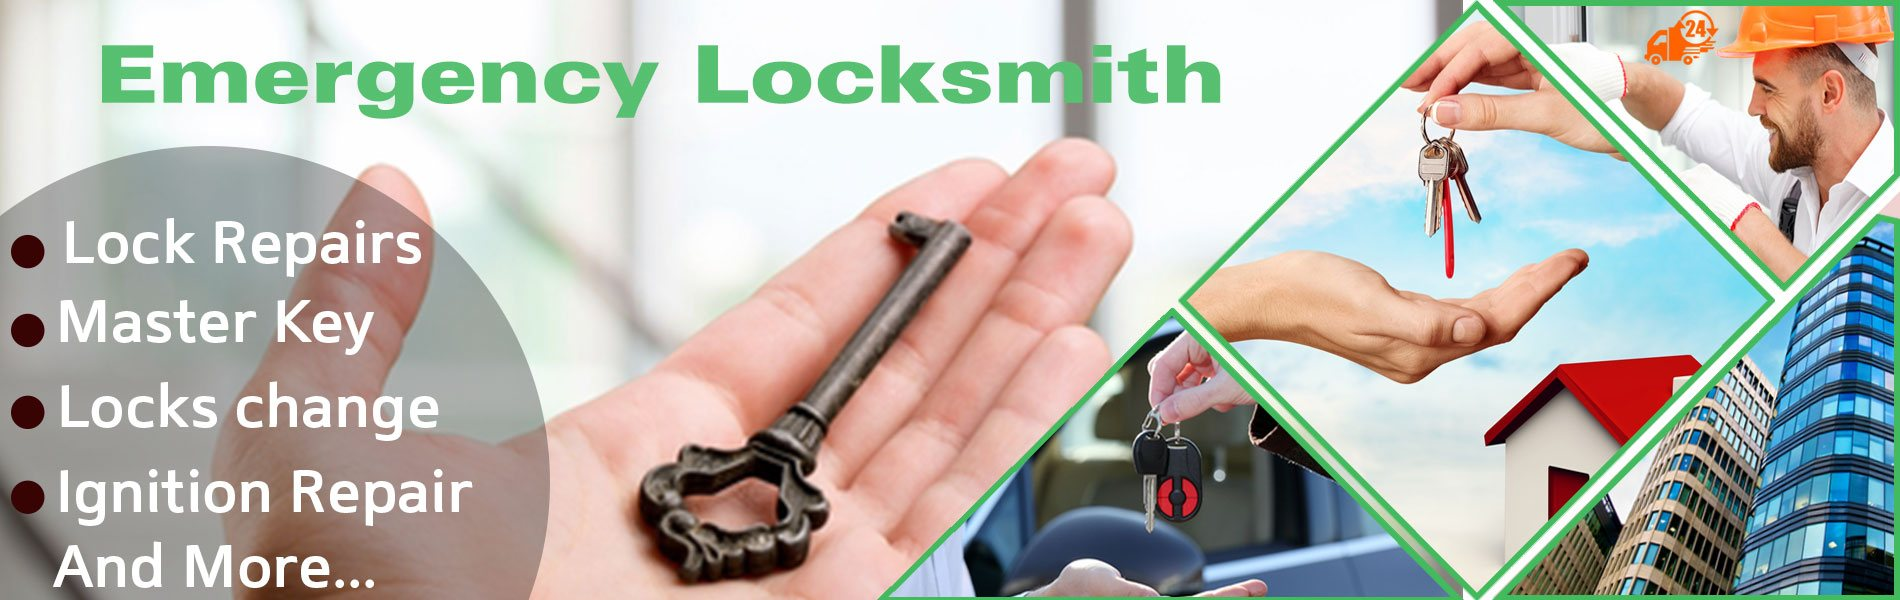 Lock Safe Services Xenia, OH 937-387-7475